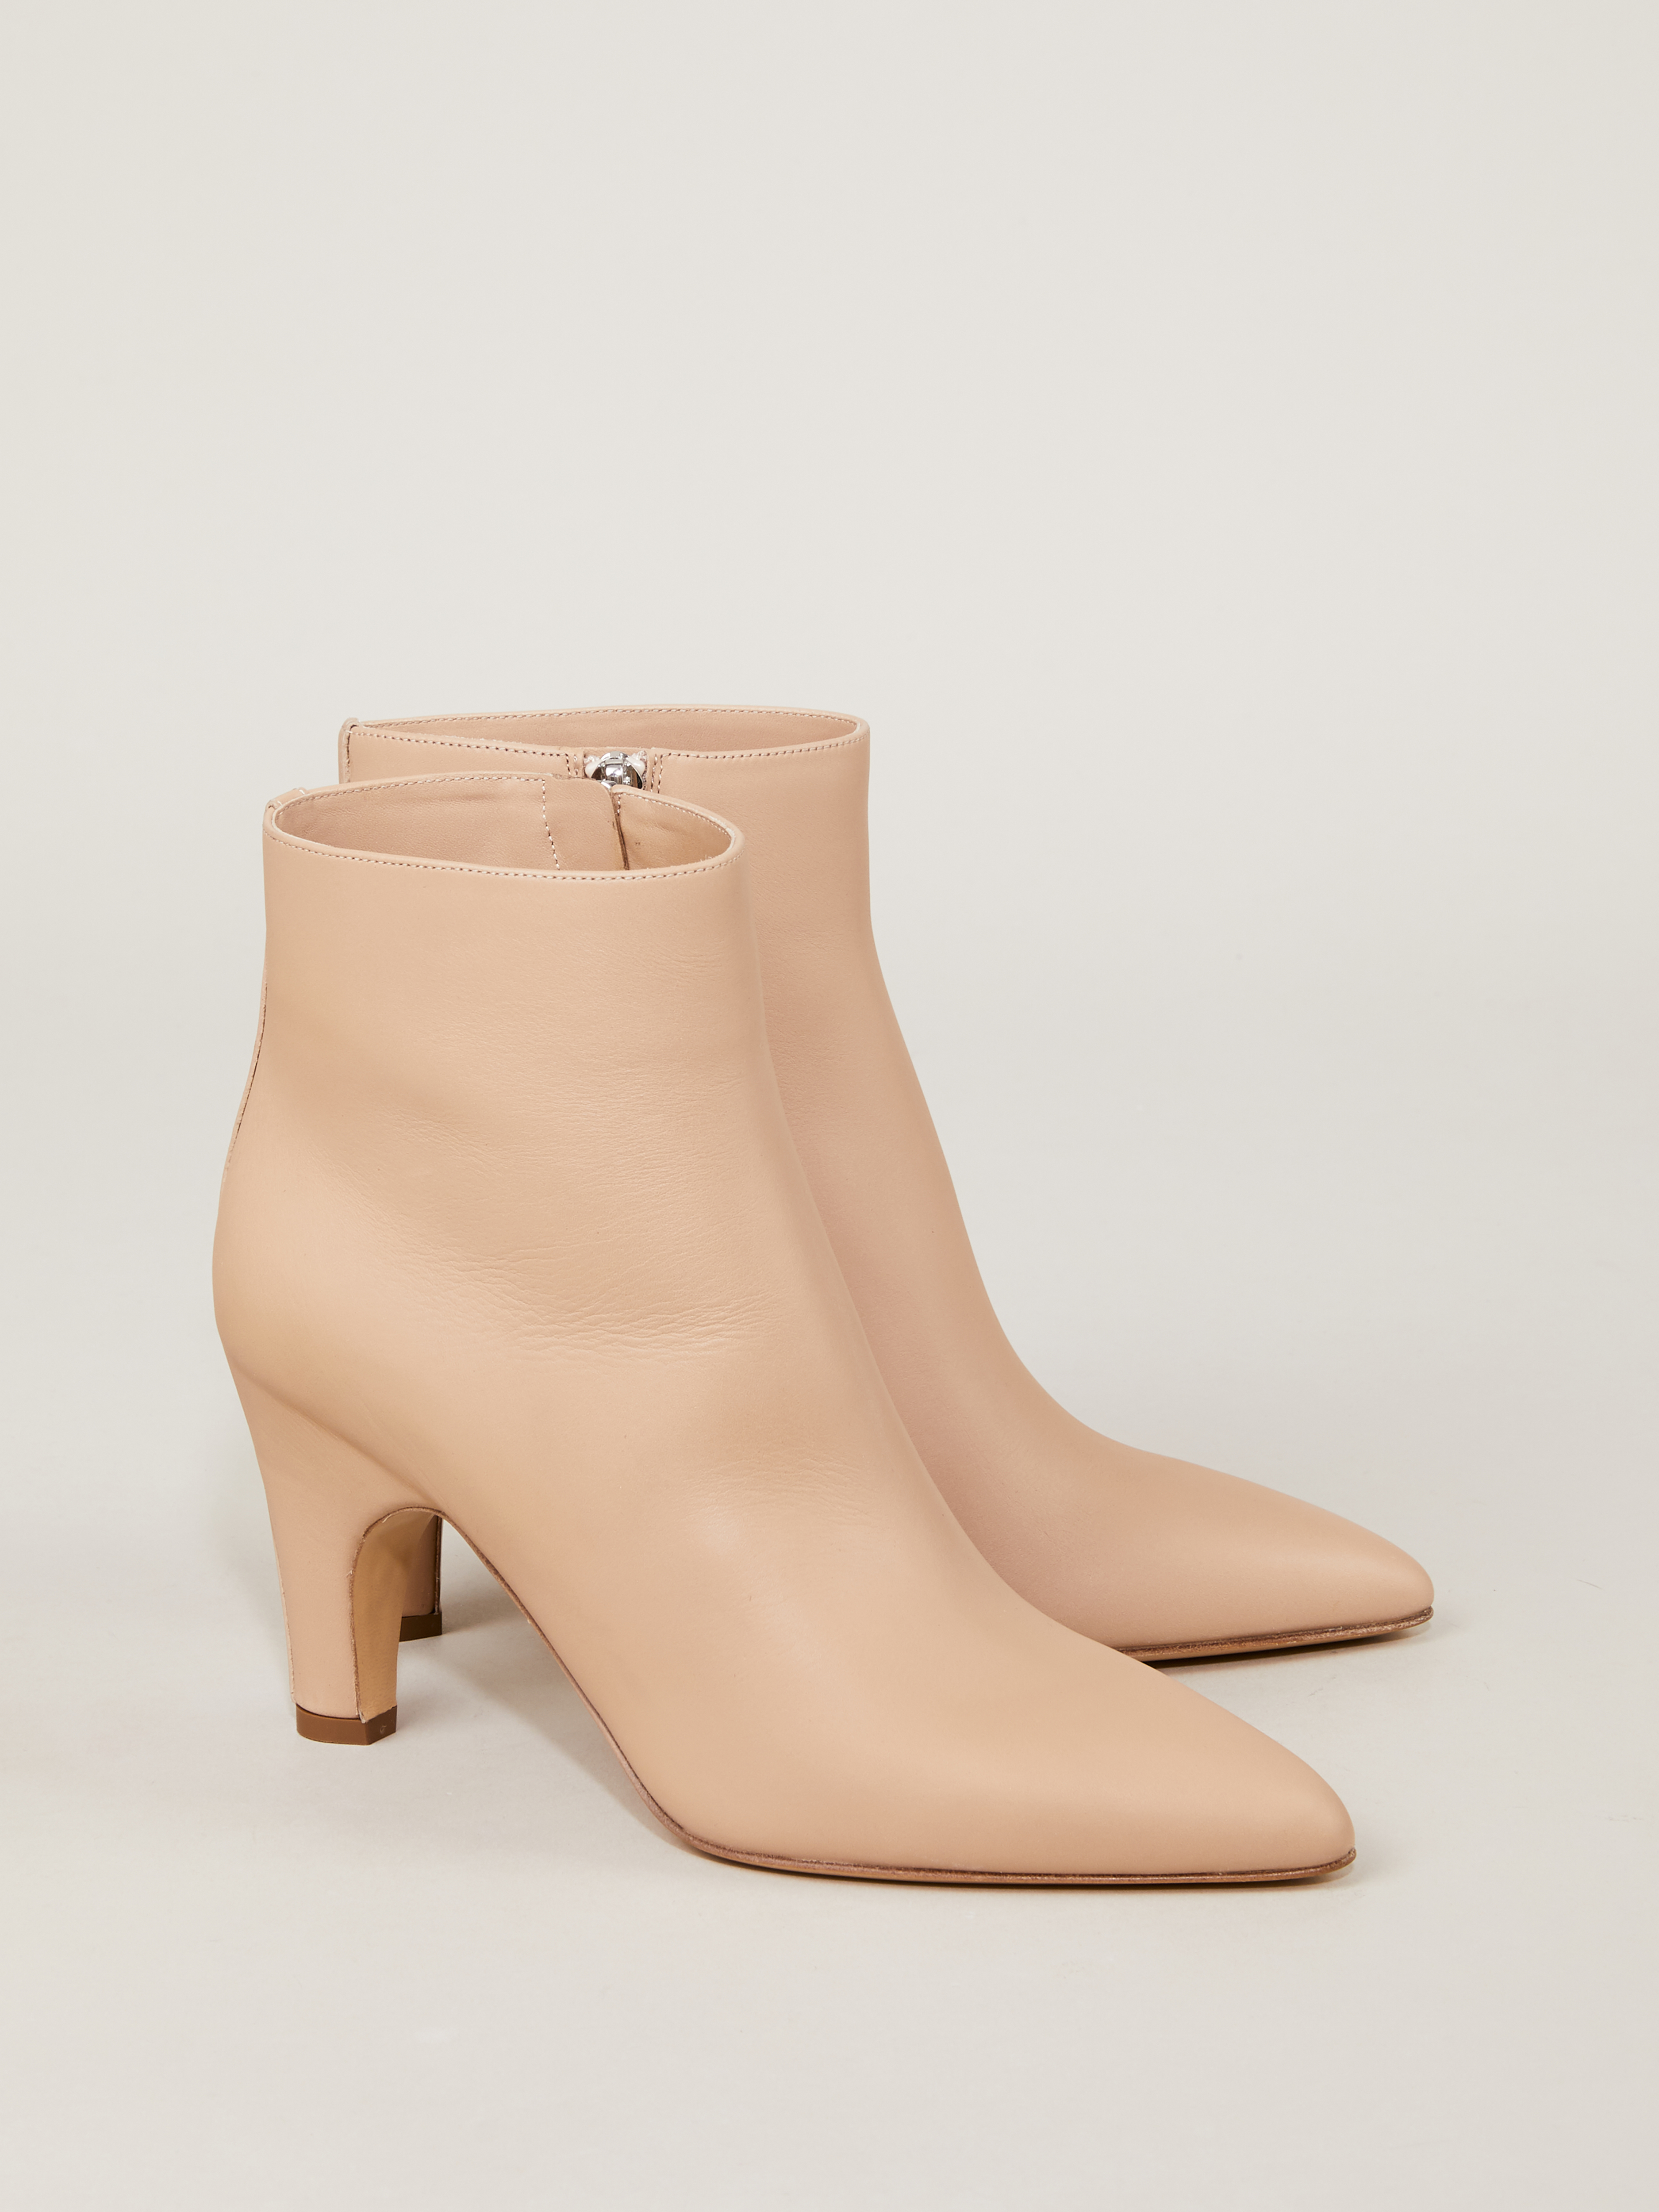 Gabriela Hearst Ankle boots 'Levy' Nude